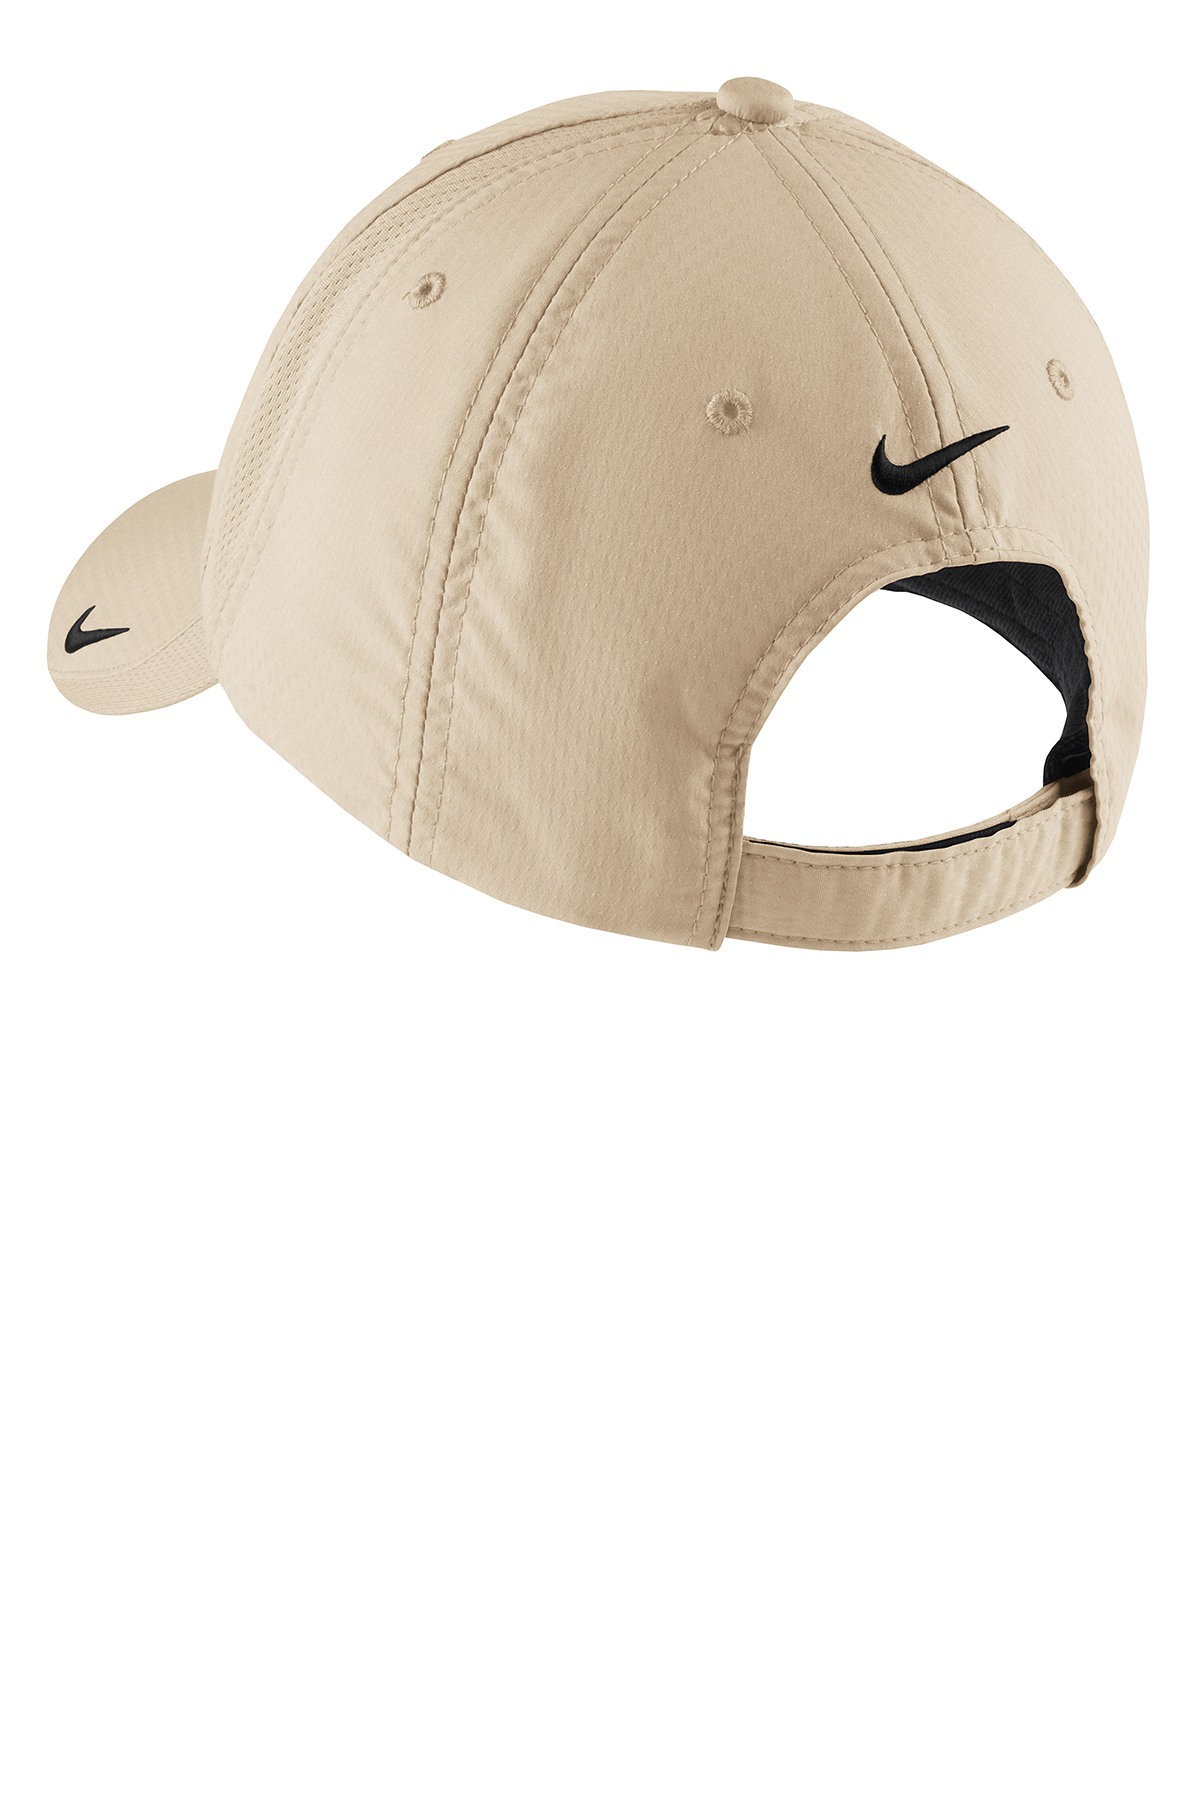 256a1f07c06ff ... Nike Sphere Dry Cap. A maximum of 8 logos have been uploaded. Please  remove a logo from My Logos to continue